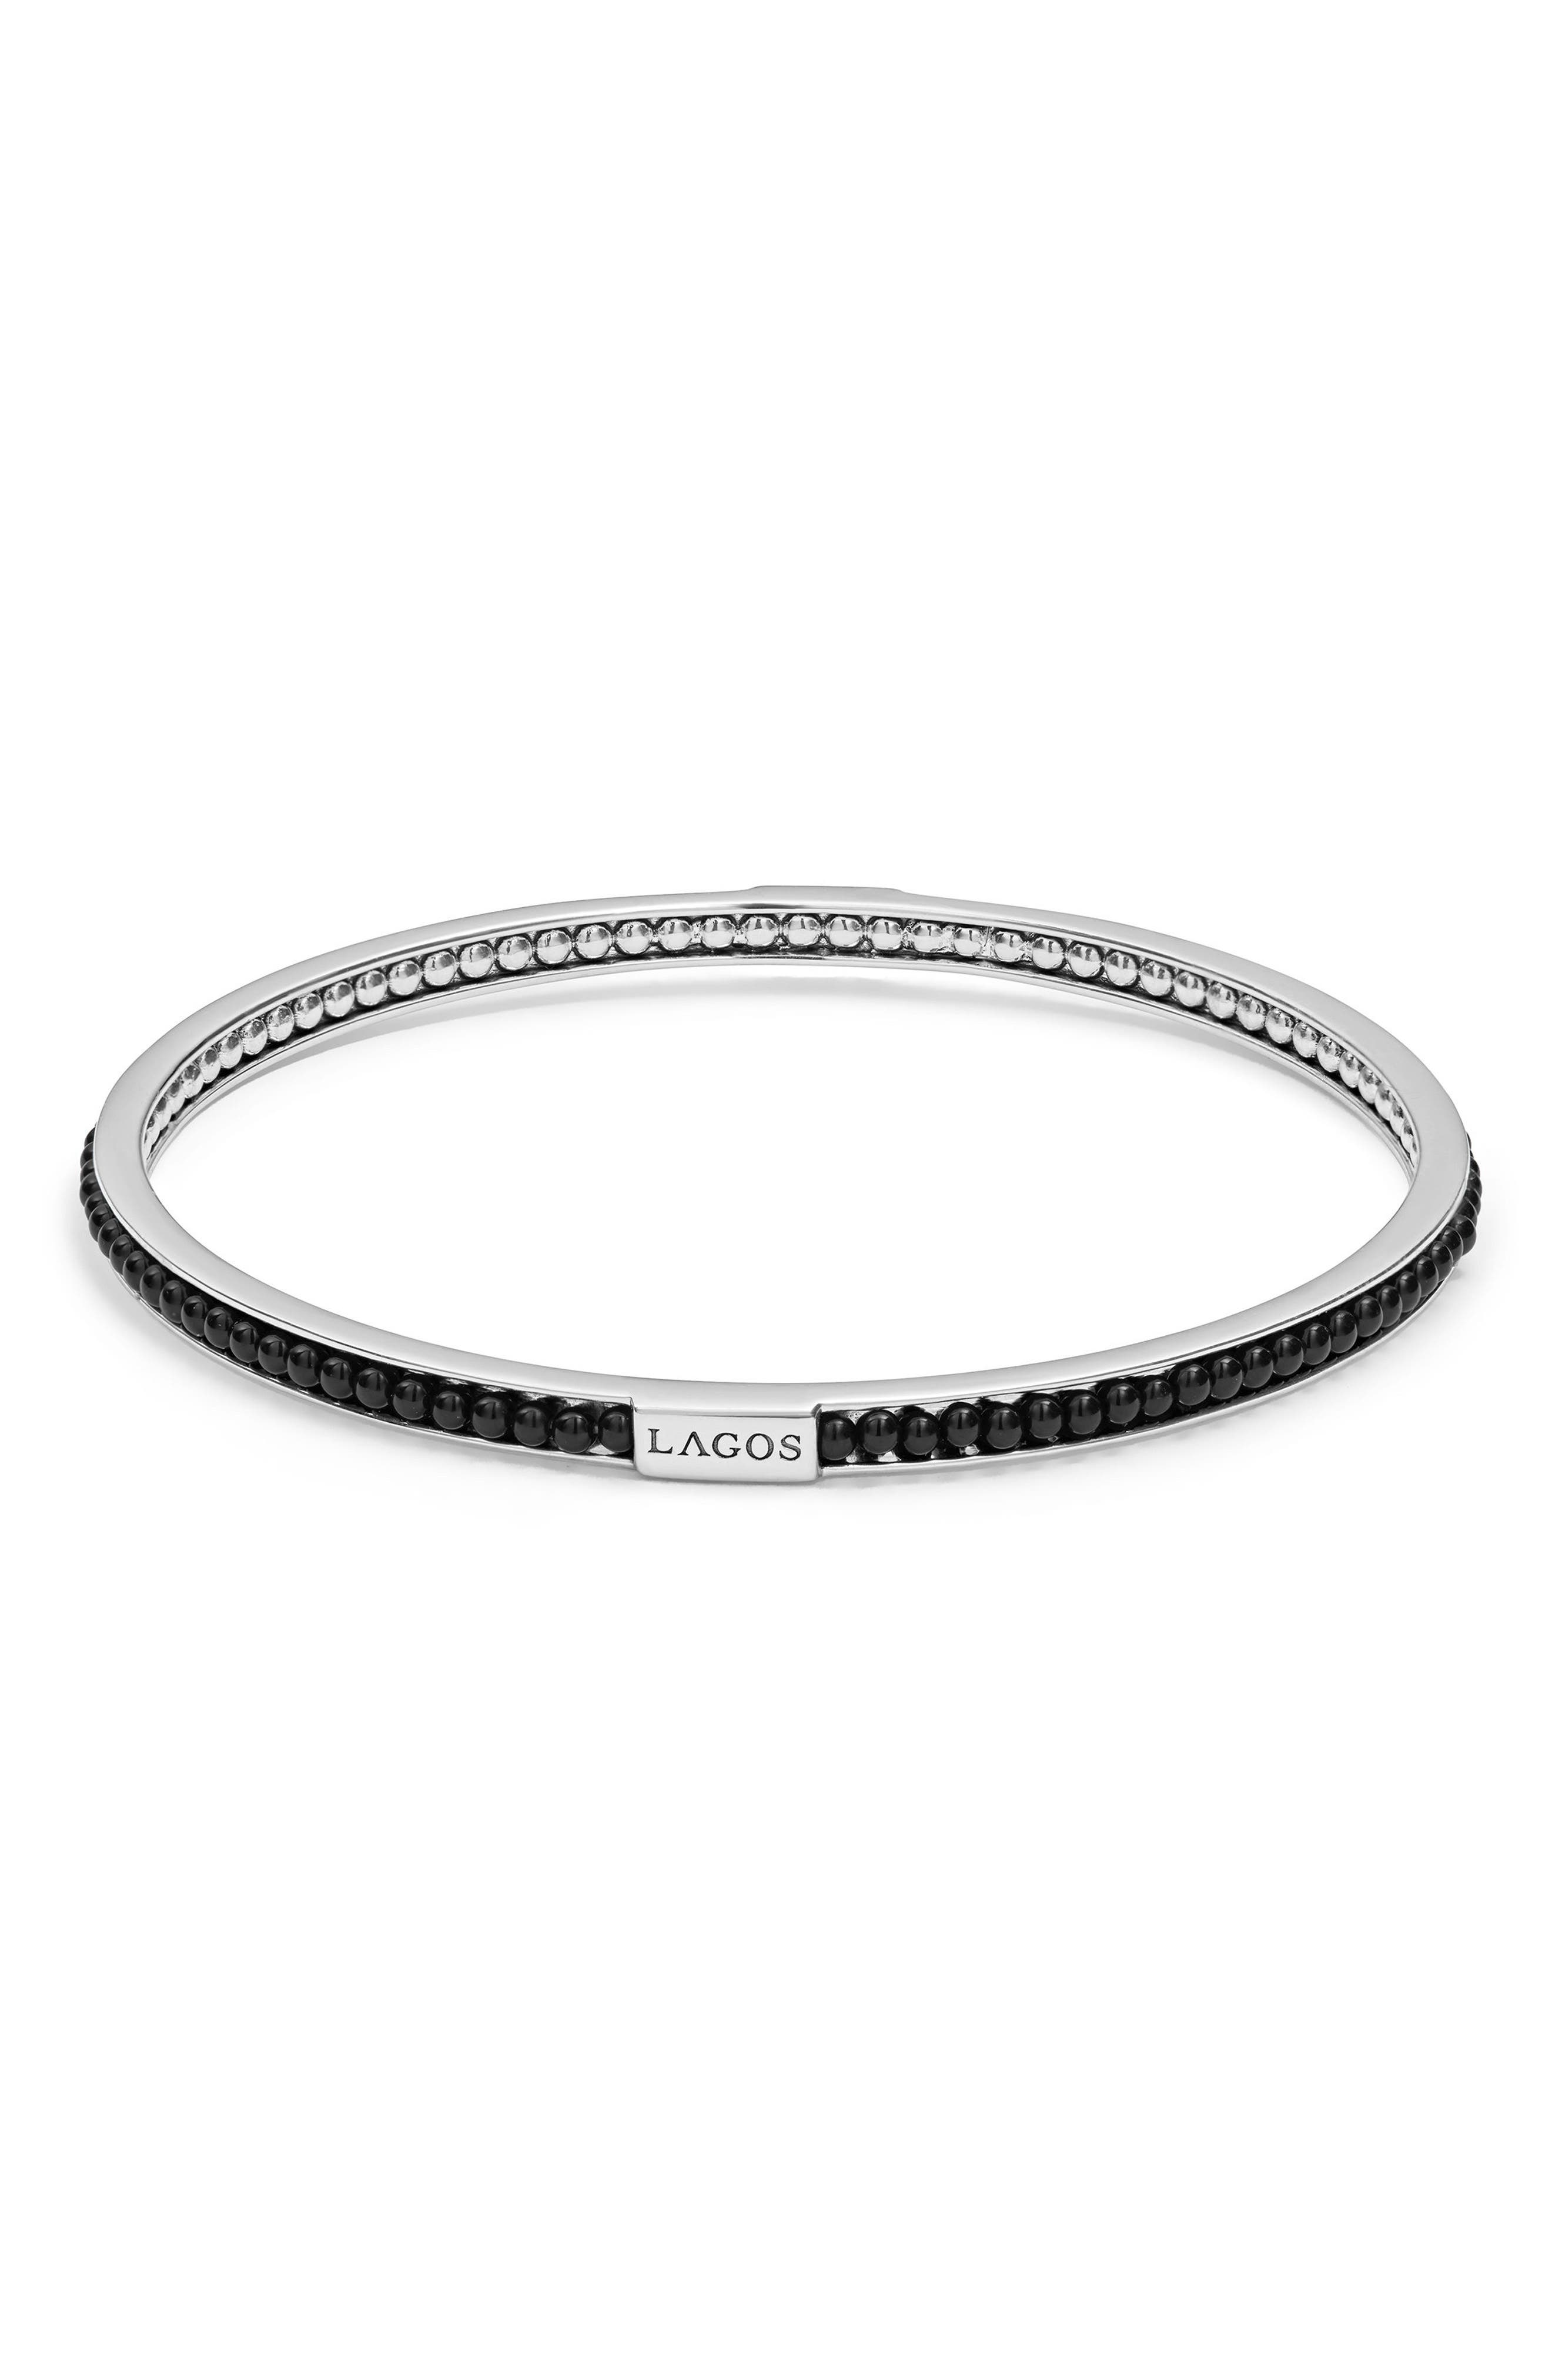 Caviar Icon Beaded Bangle Bracelet,                             Main thumbnail 1, color,                             Silver/ Onyx